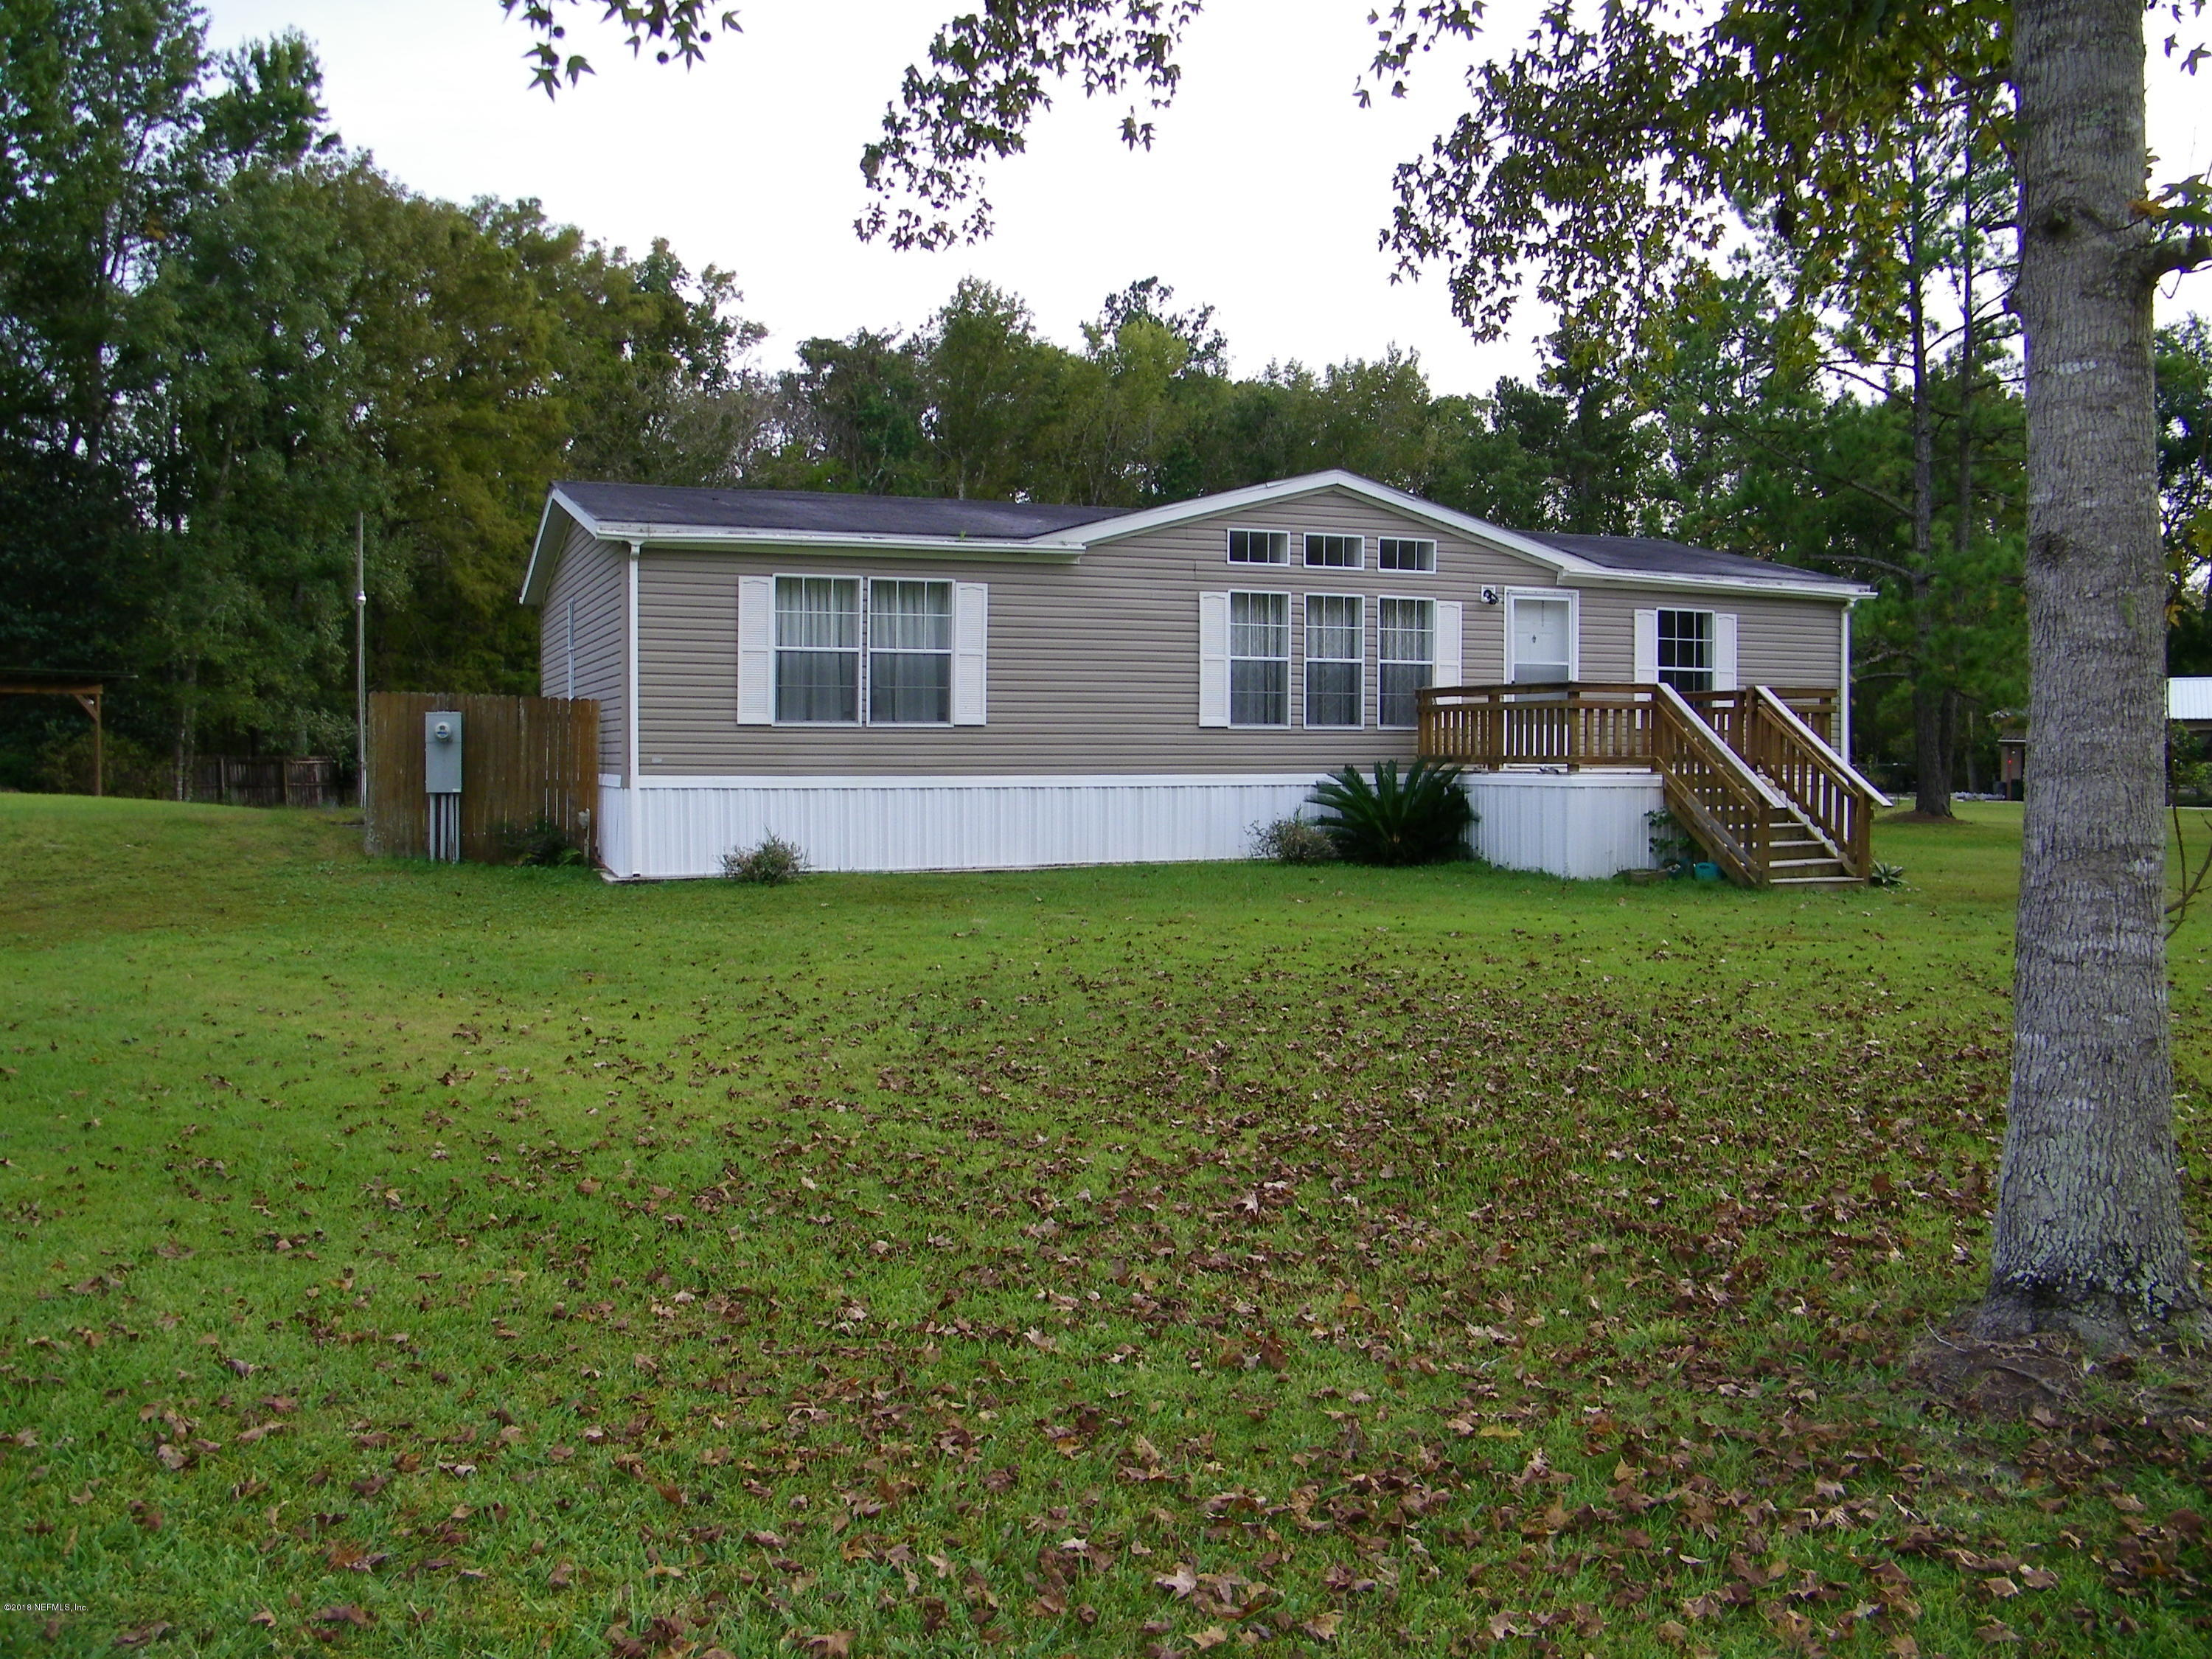 106 ROSS, SATSUMA, FLORIDA 32189, 3 Bedrooms Bedrooms, ,2 BathroomsBathrooms,Residential - mobile home,For sale,ROSS,965294